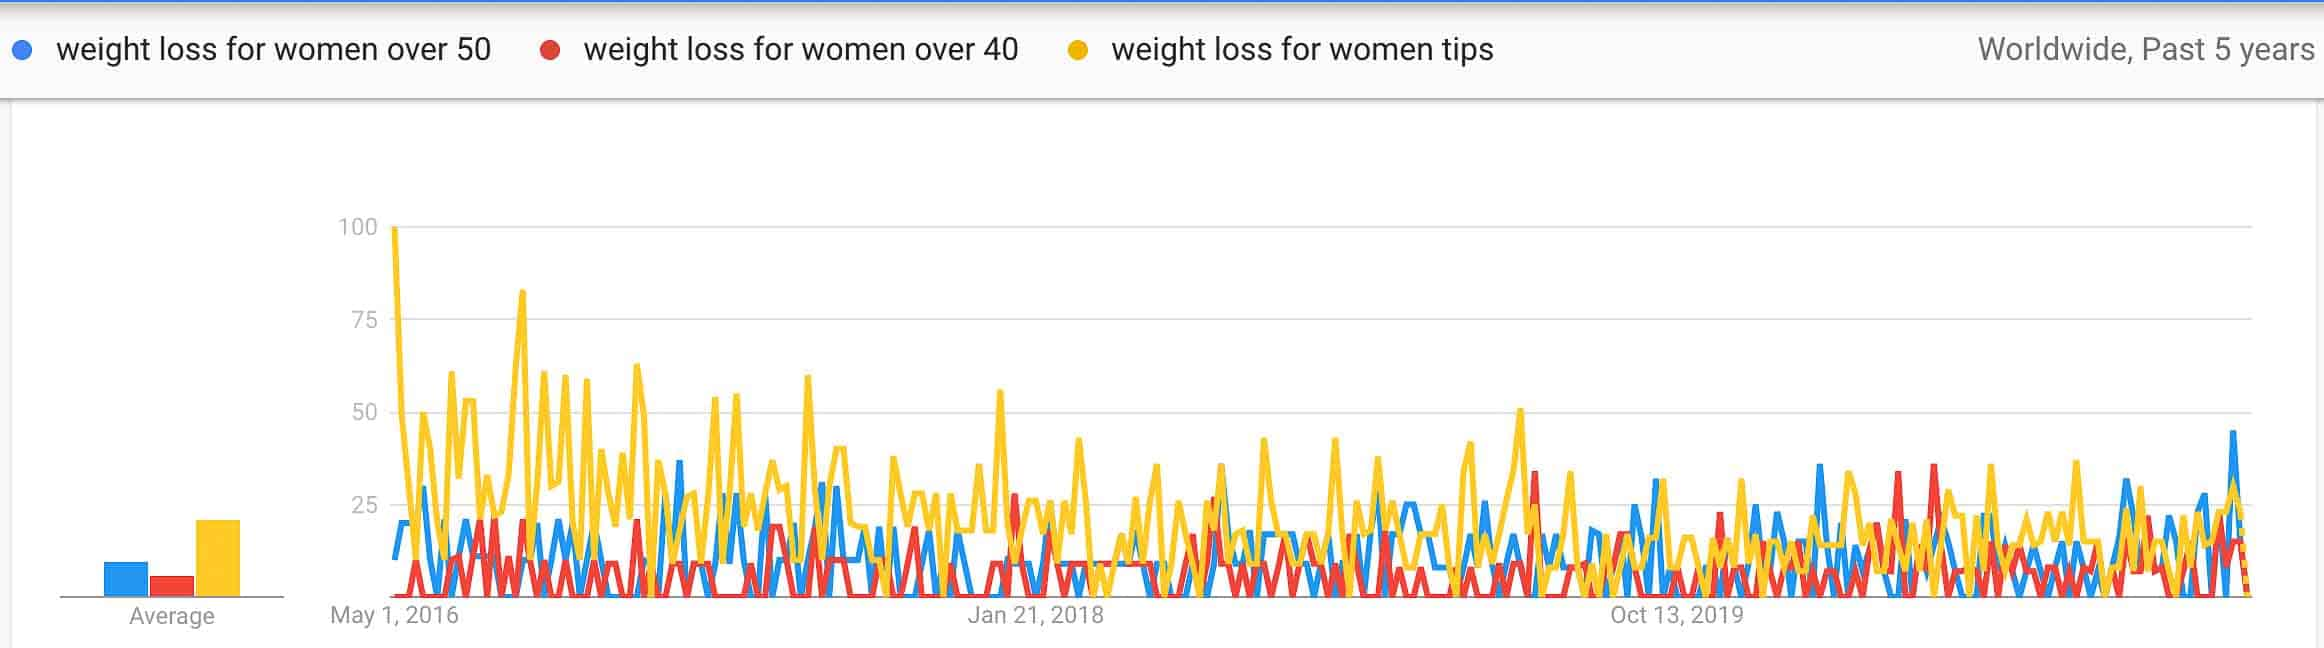 weight loss for women trends